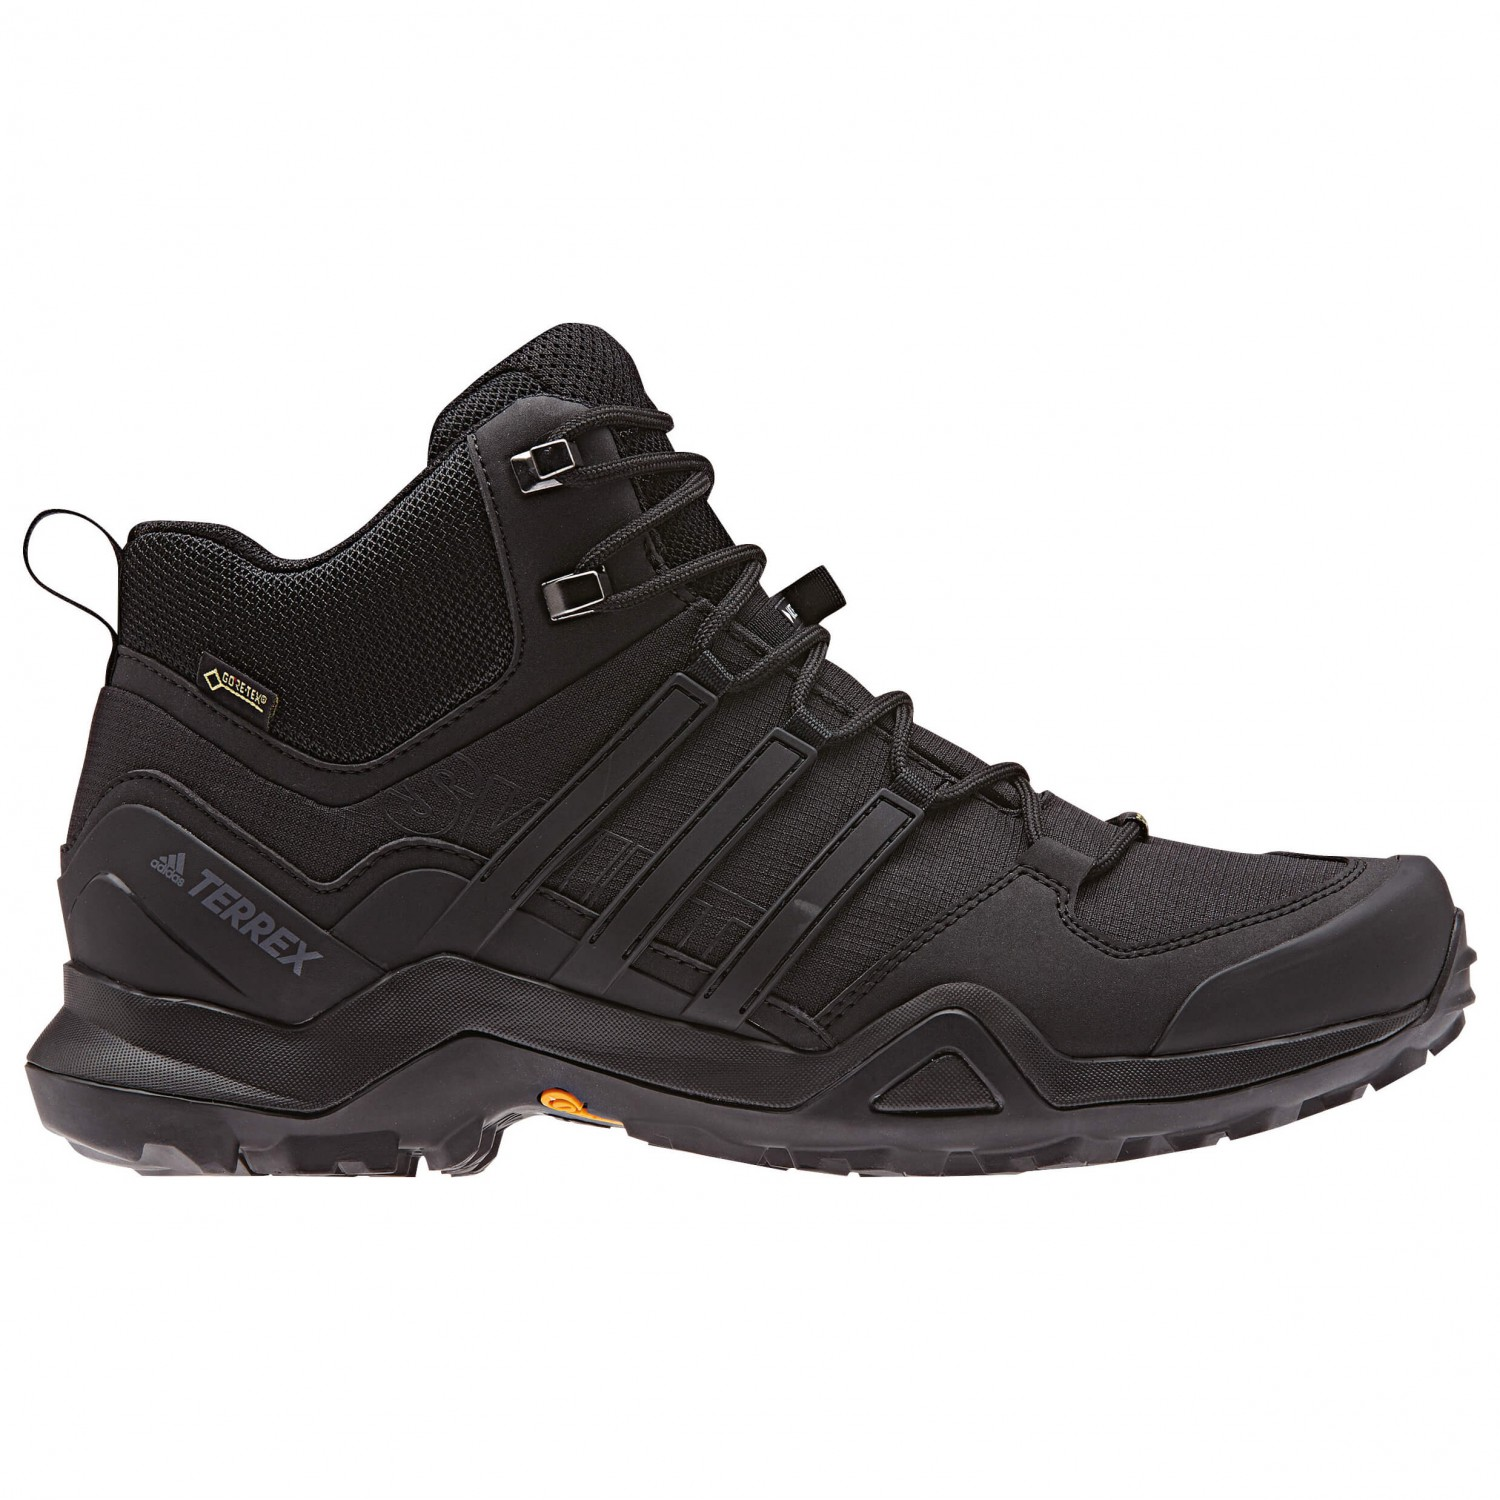 11c583360 Adidas Terrex Swift R2 Mid GTX - Walking Boots Men s